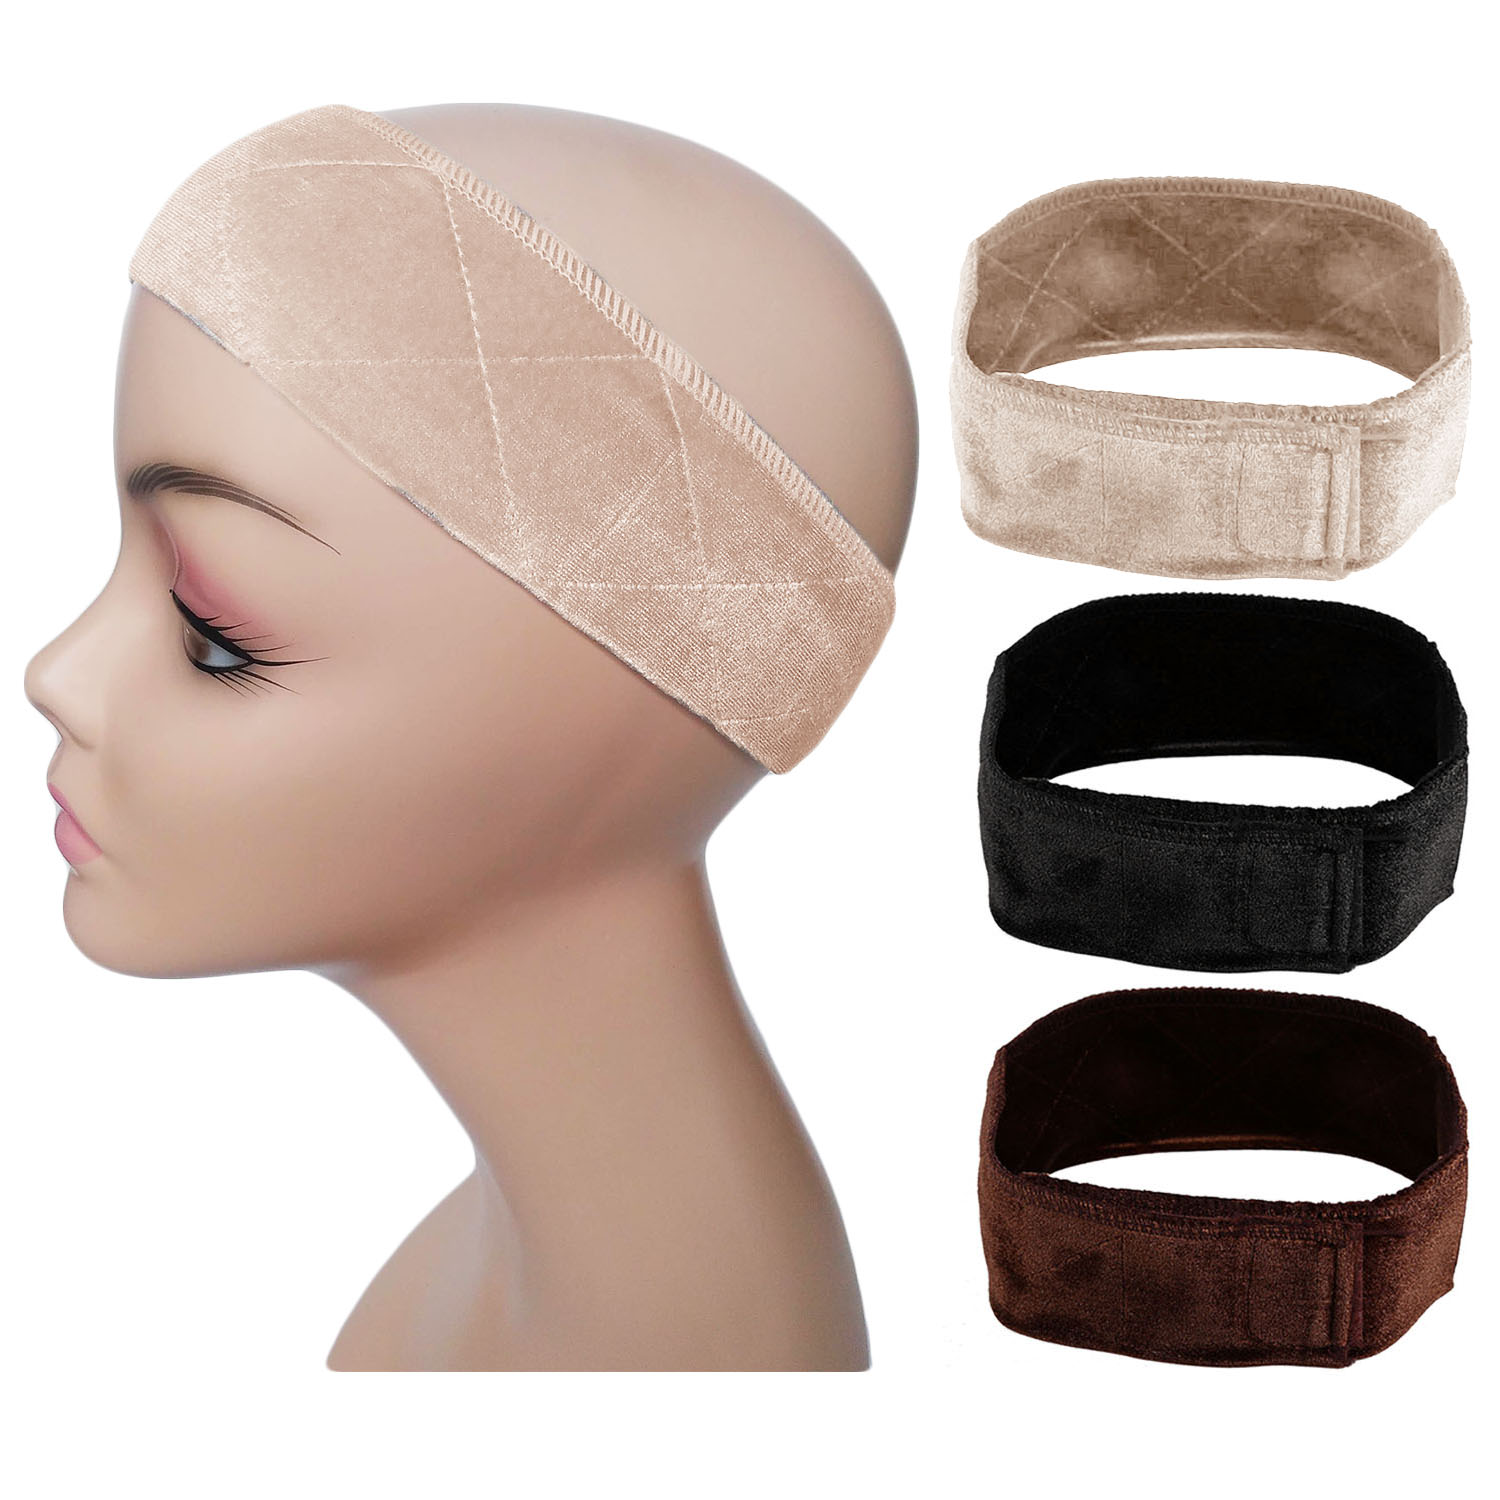 1pc Adjustable  Velvet Non-slip Wig Grip Band With Hook And Loop Tape For Holding Your Wig Hat Scarf Hair Wigs Head Hair Band